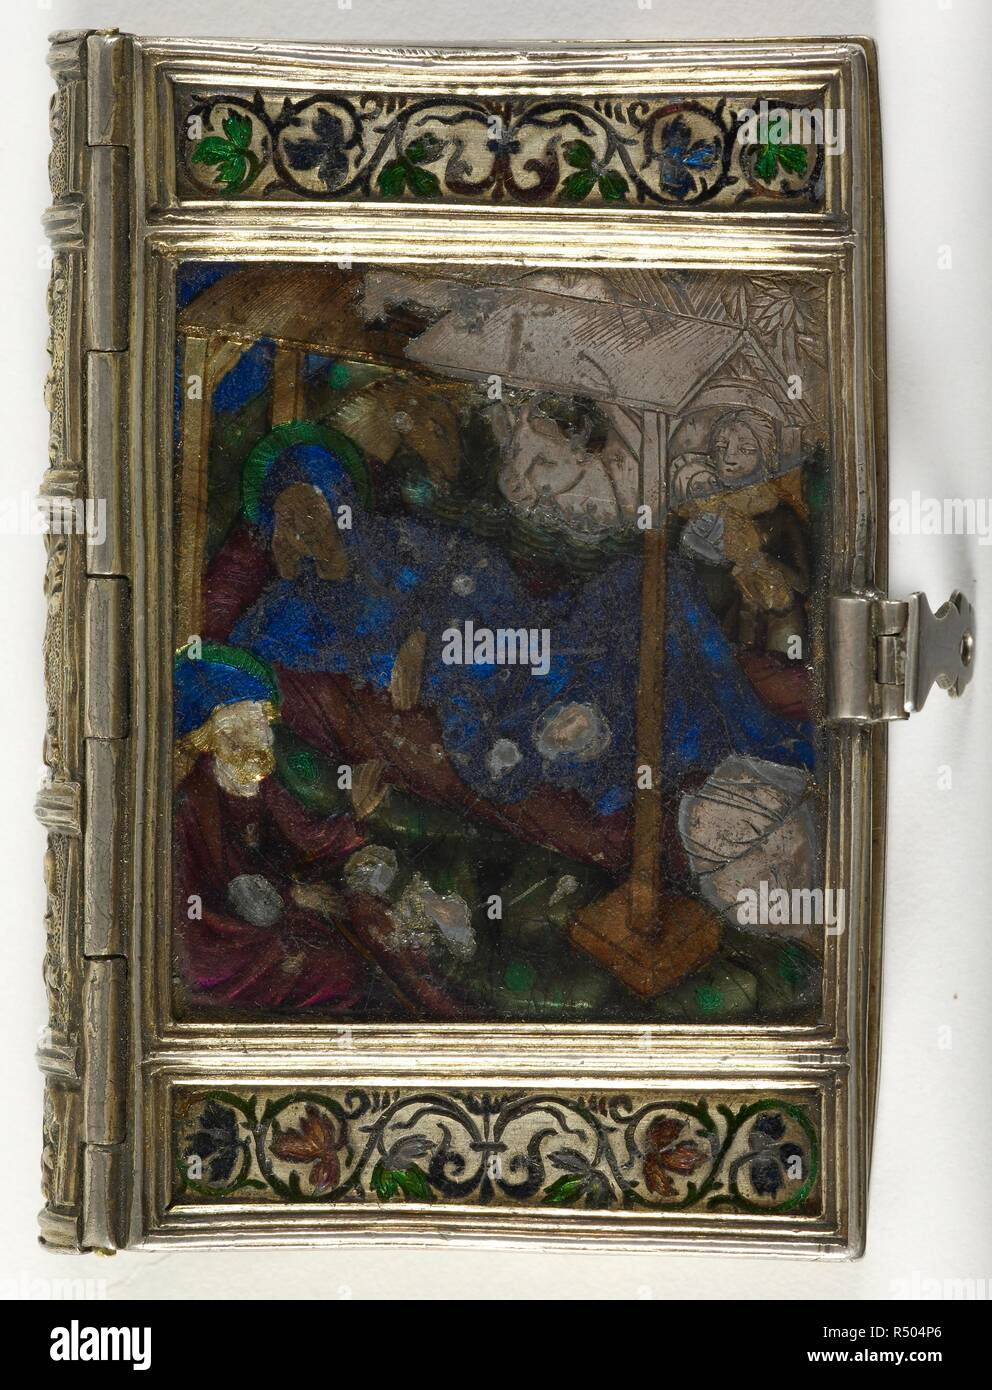 HOURS of the Cross. HOURS of the Cross and the Holy Spirit, with Penitential Psalms, Litany, and Prayers. Lat. France, 16th cent. Binding. Source: Add. 22751 front binding. Stock Photo